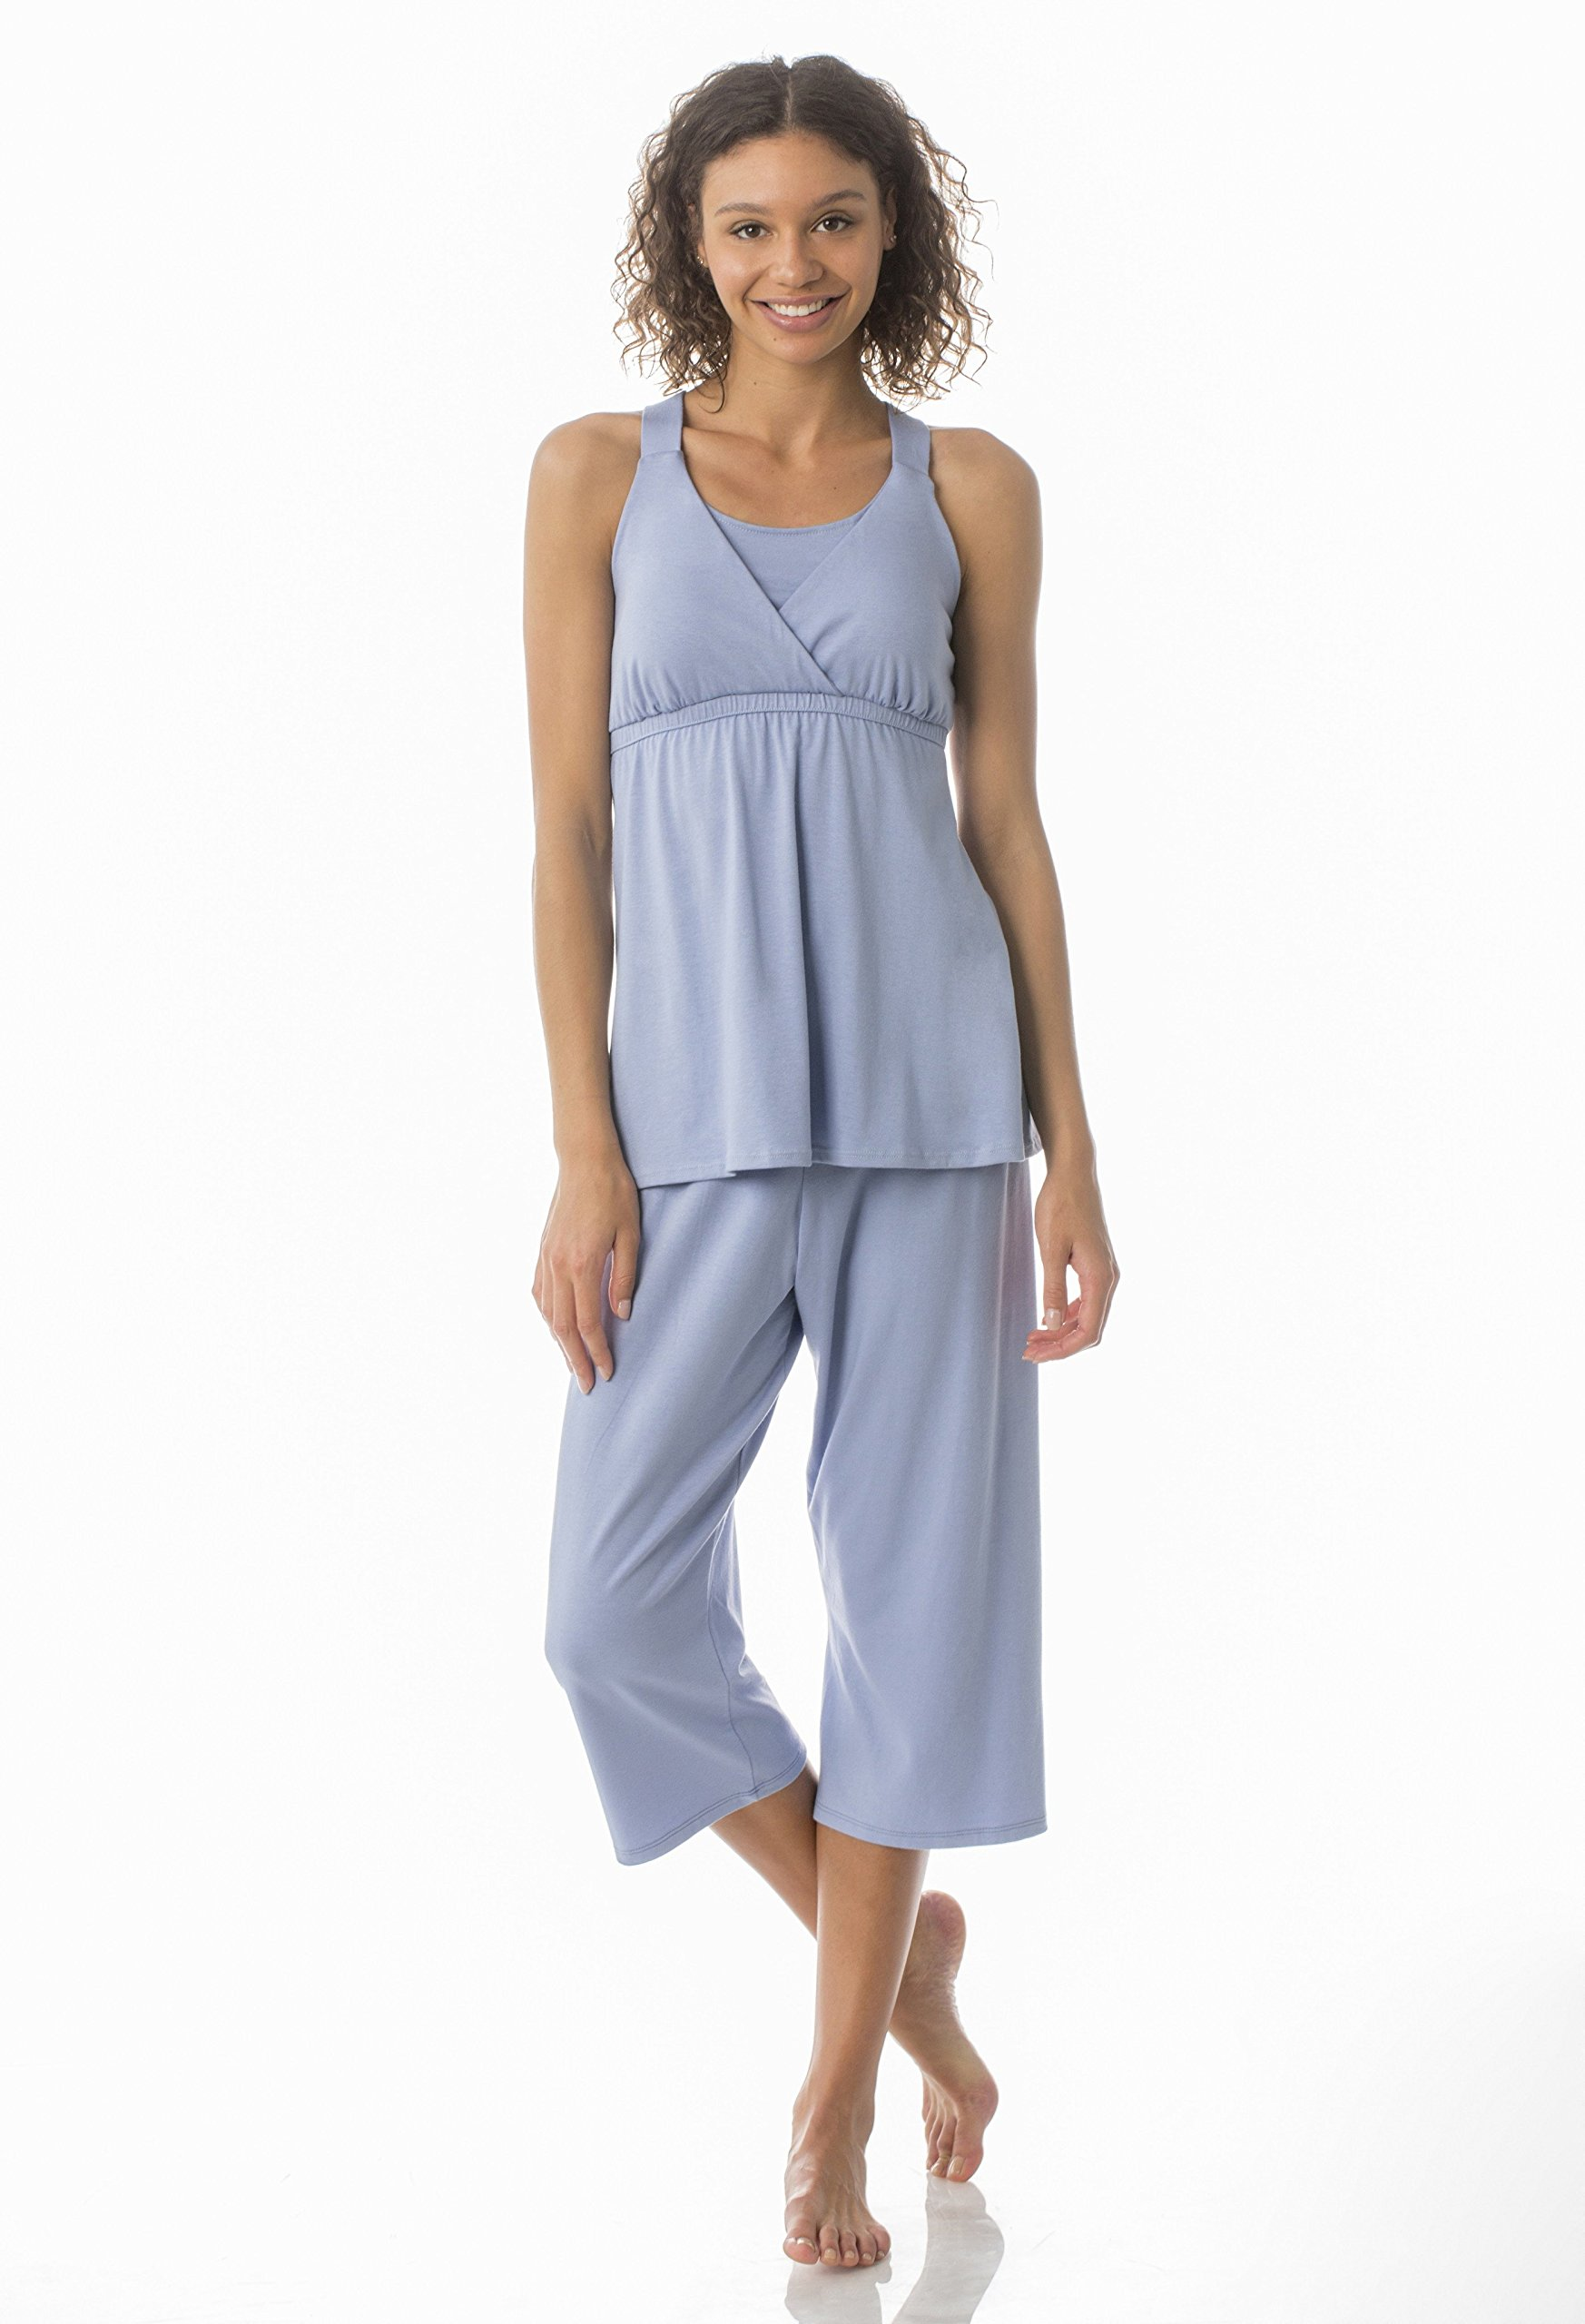 Kinzie PJ - Women's Cropped Nursing/Maternity Pajama Set - Made in The USA